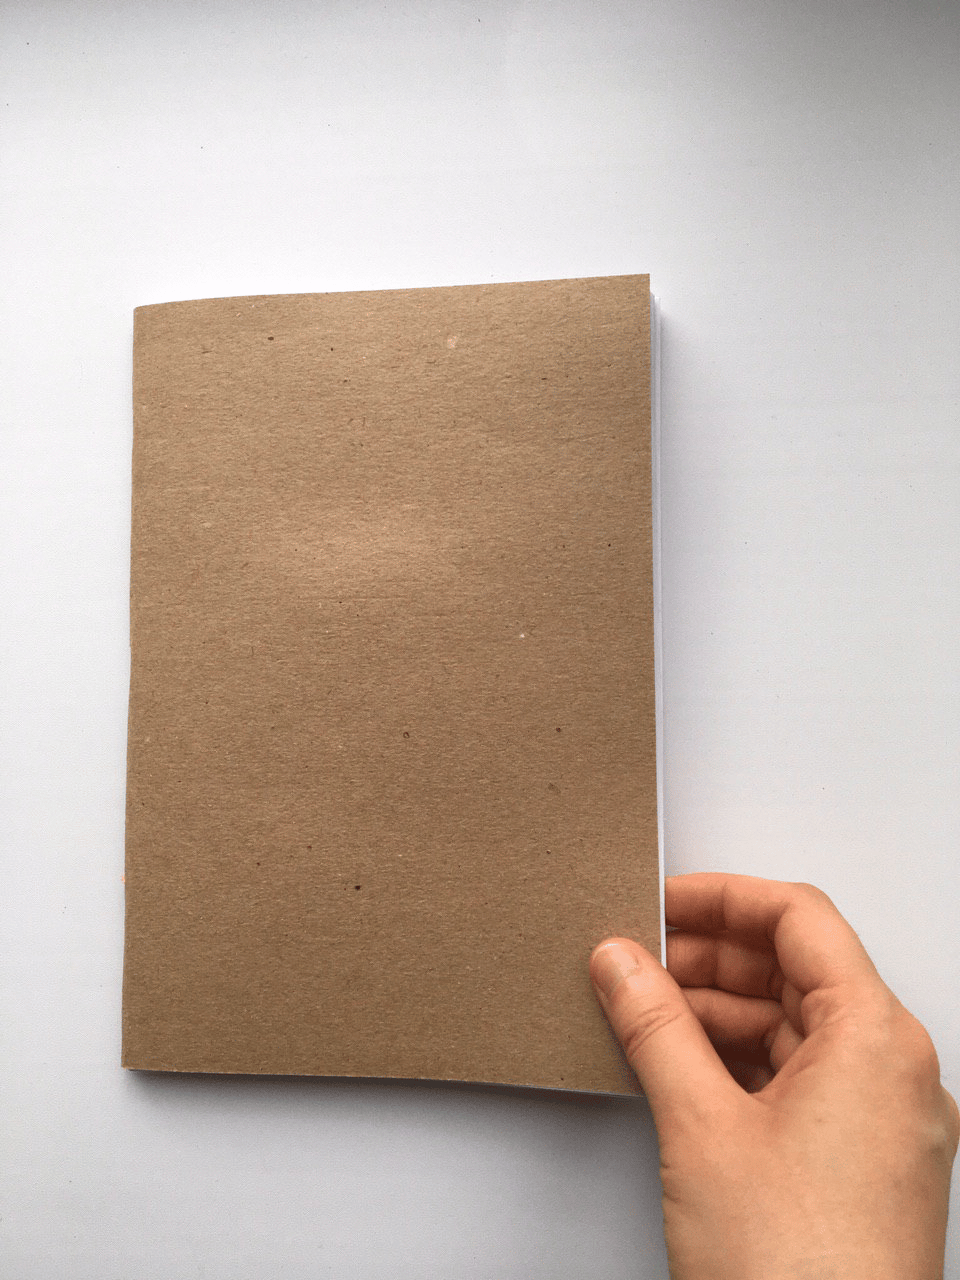 my first notebook - image 1 - student project